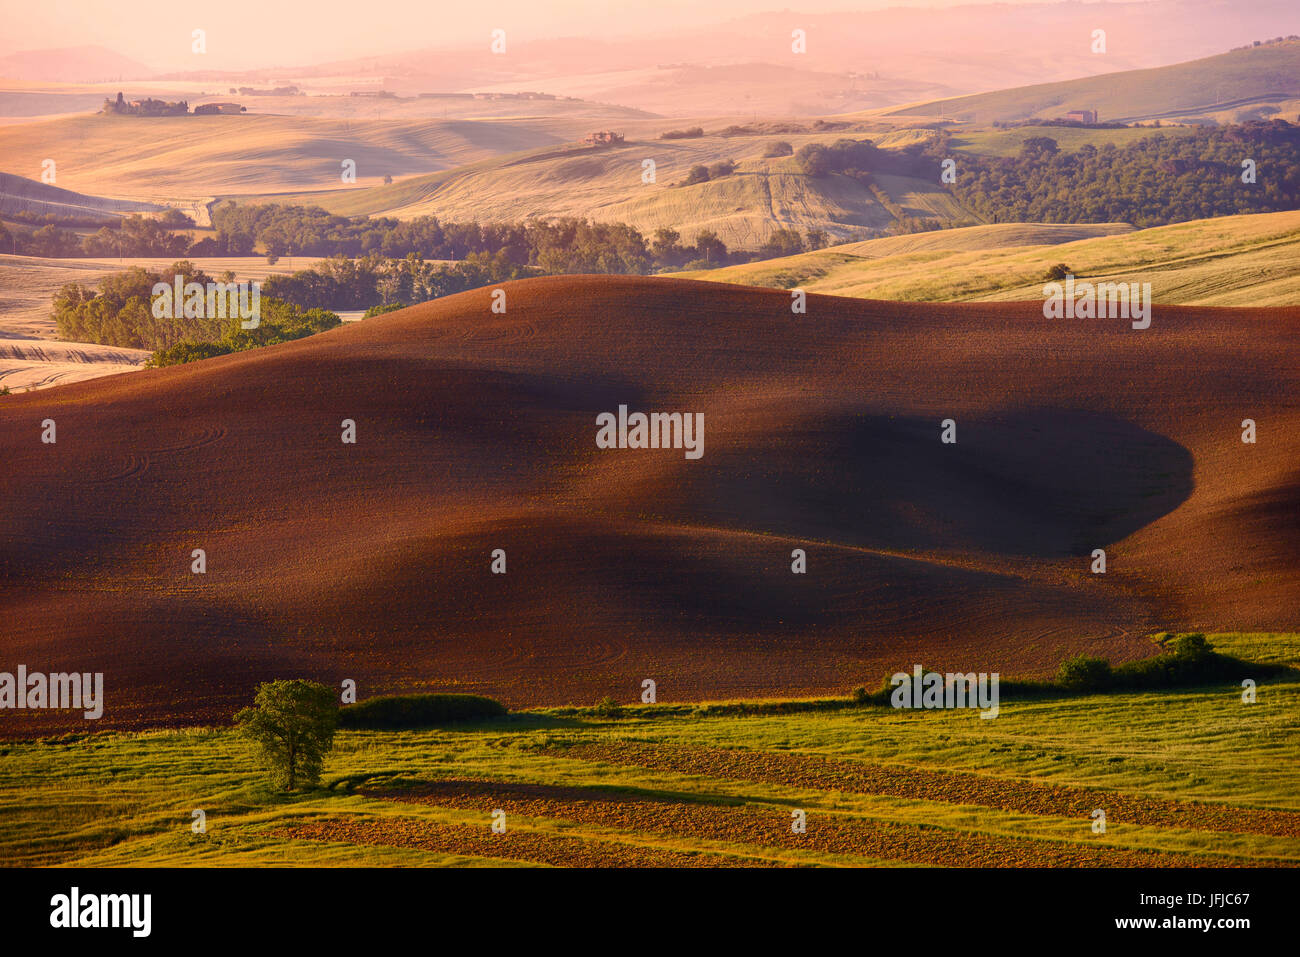 Italy, Tuscany, Siena District, Orcia Valley - fallow field Stock Photo